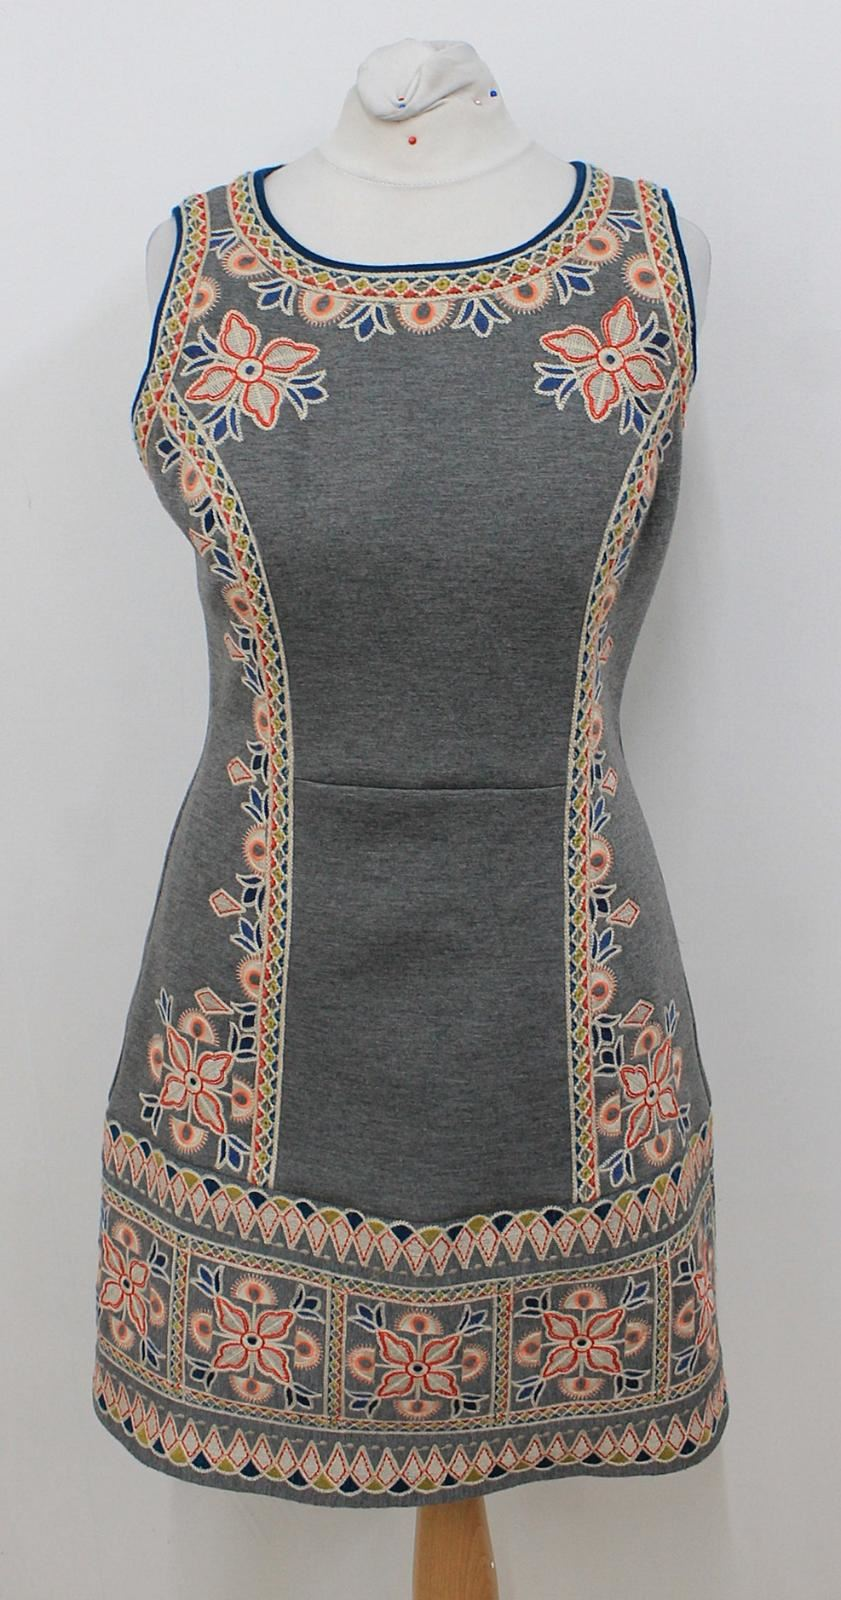 ANTHROPOLOGIE-MAEVE-Ladies-Grey-Floral-Embroidered-Sleeveless-Dress-Size-4P-S